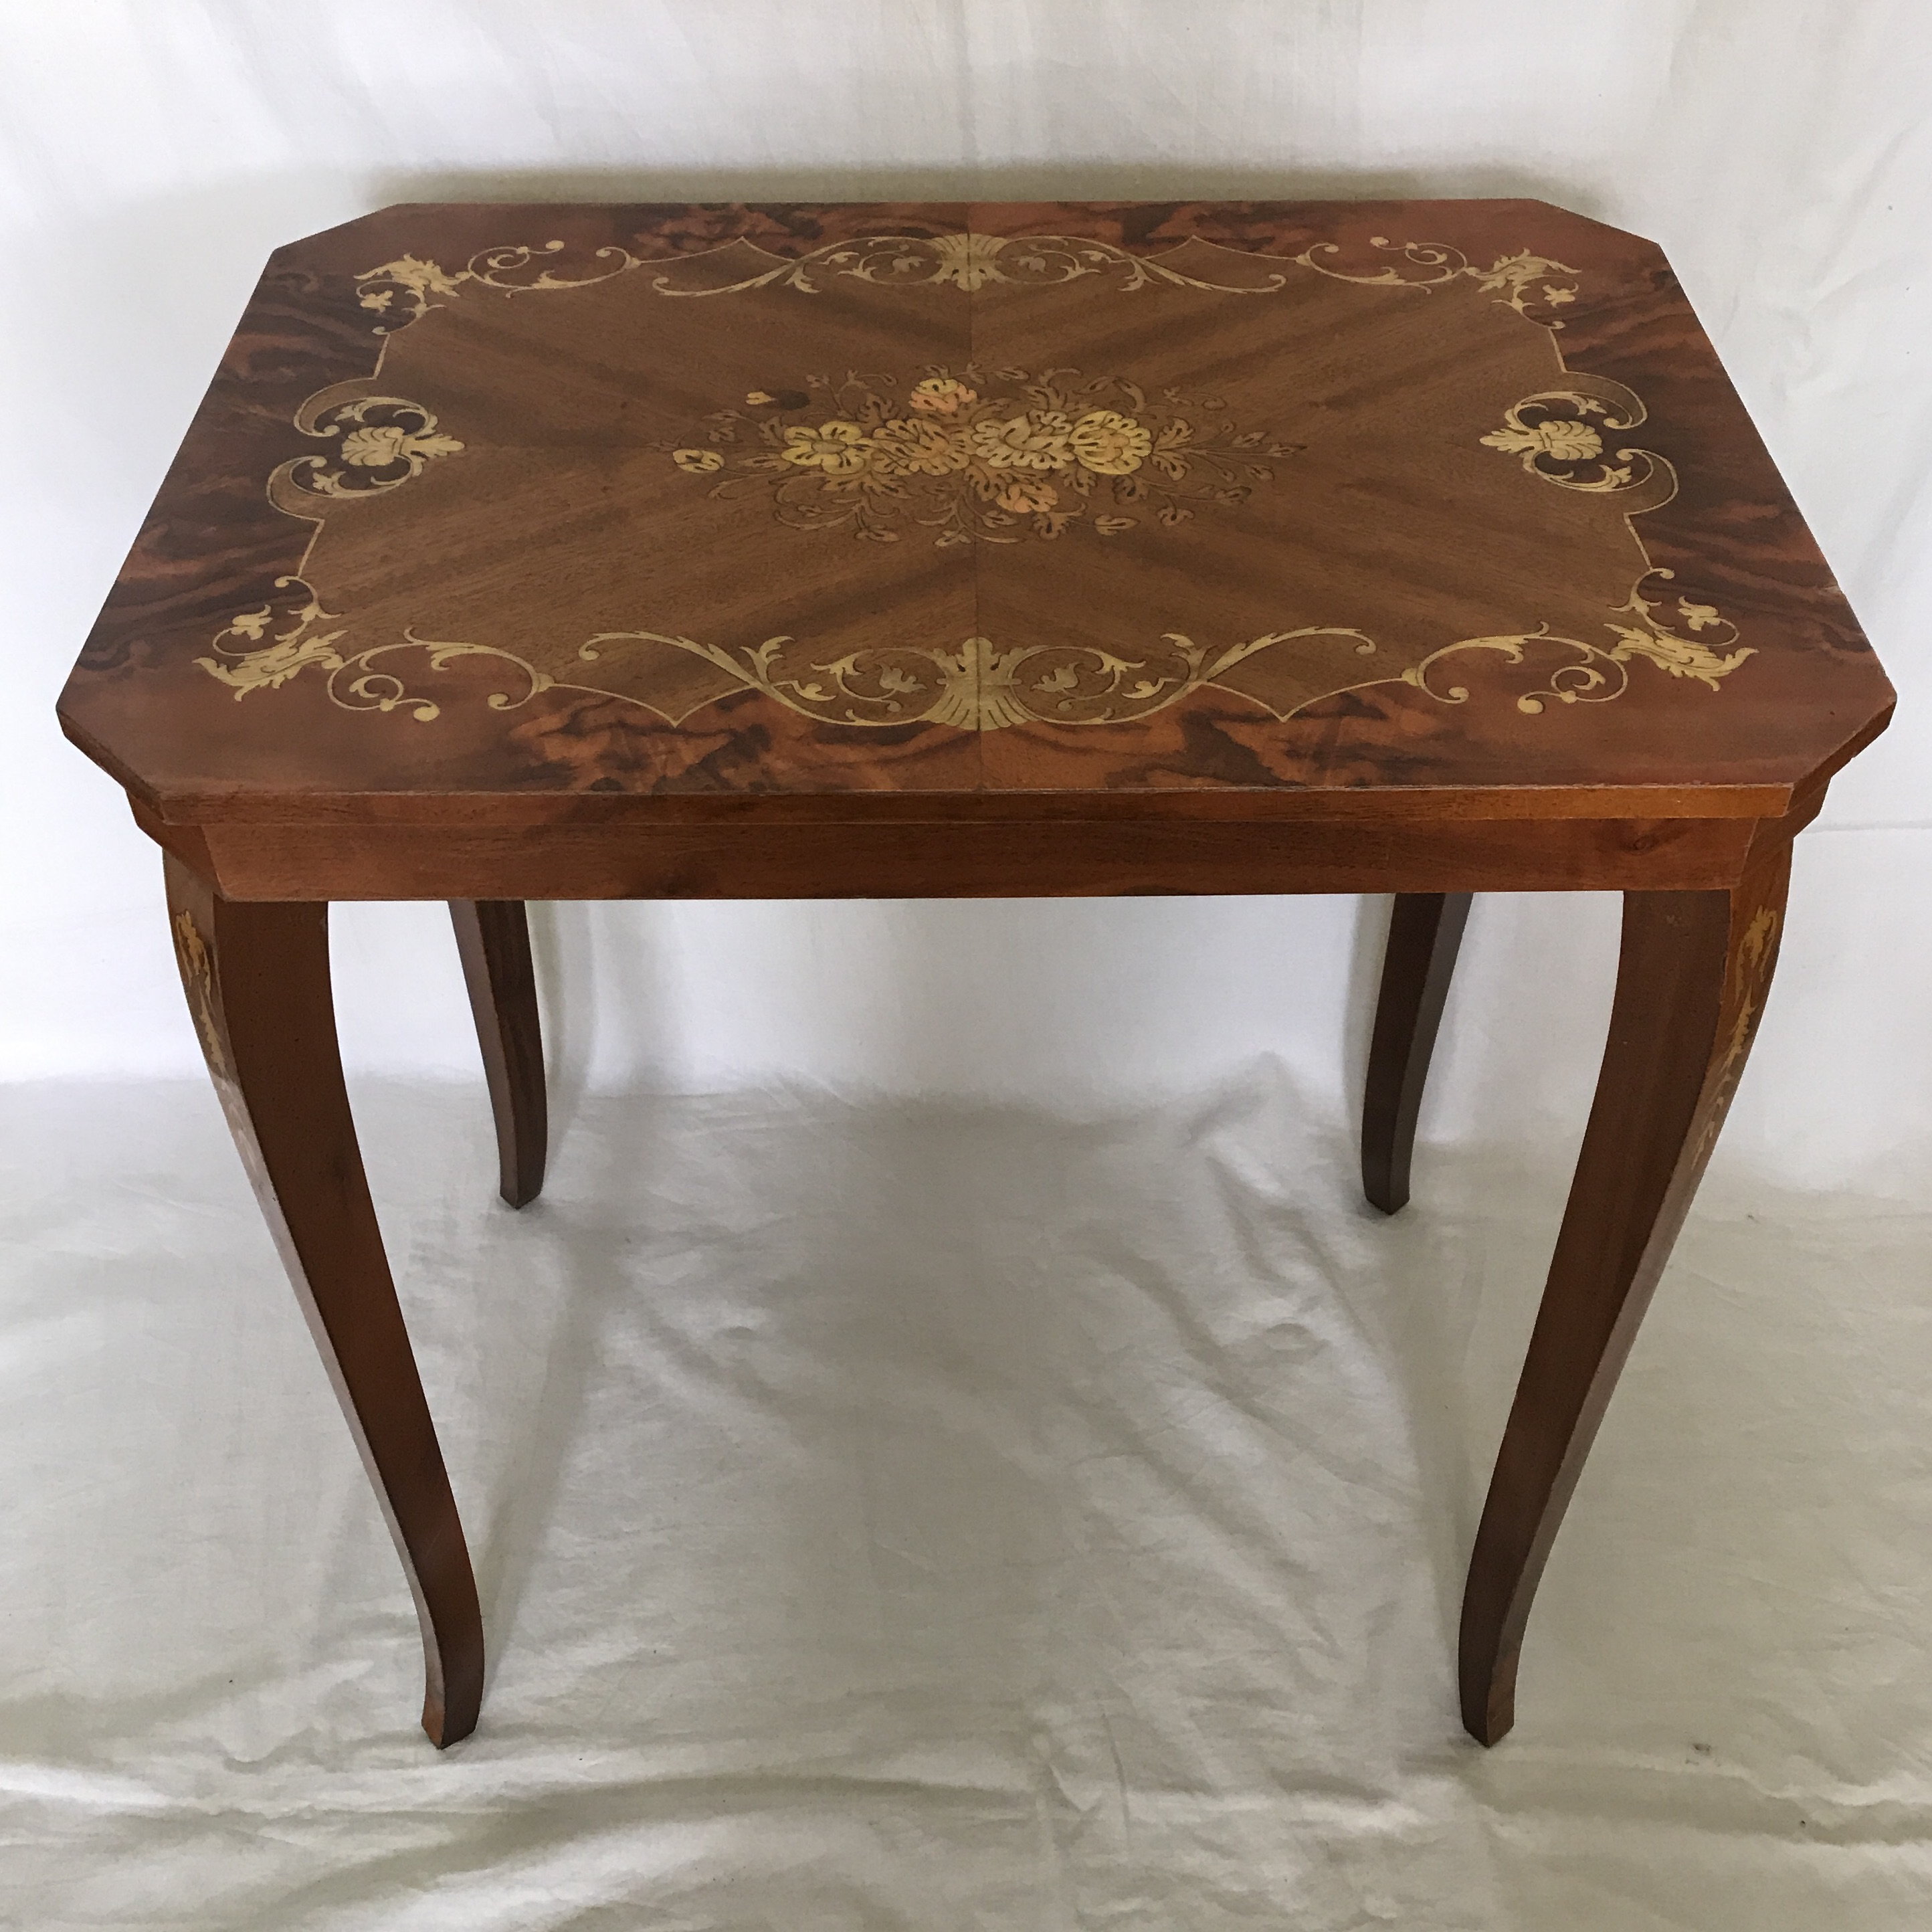 Wood Italian Marquetry U0026 Inlaid Wood Table For Sale   Image 7 ...